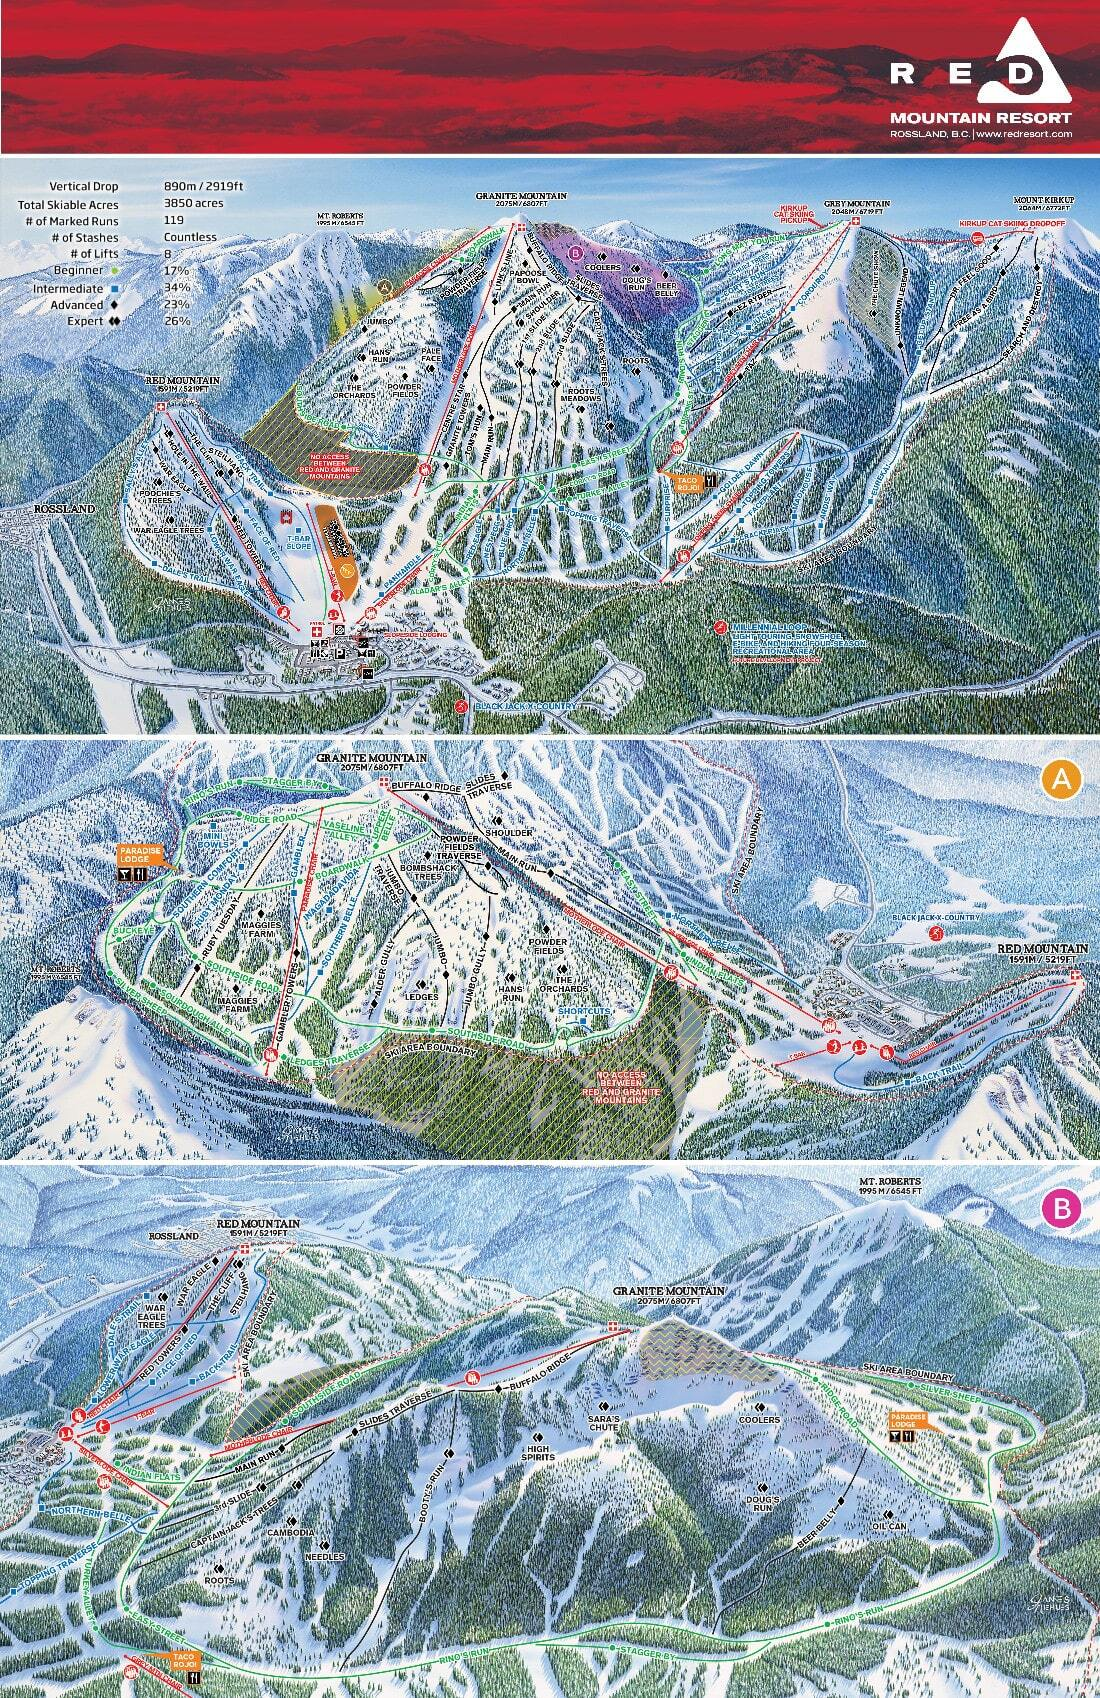 Red Mountain Resort Piste / Trail Map